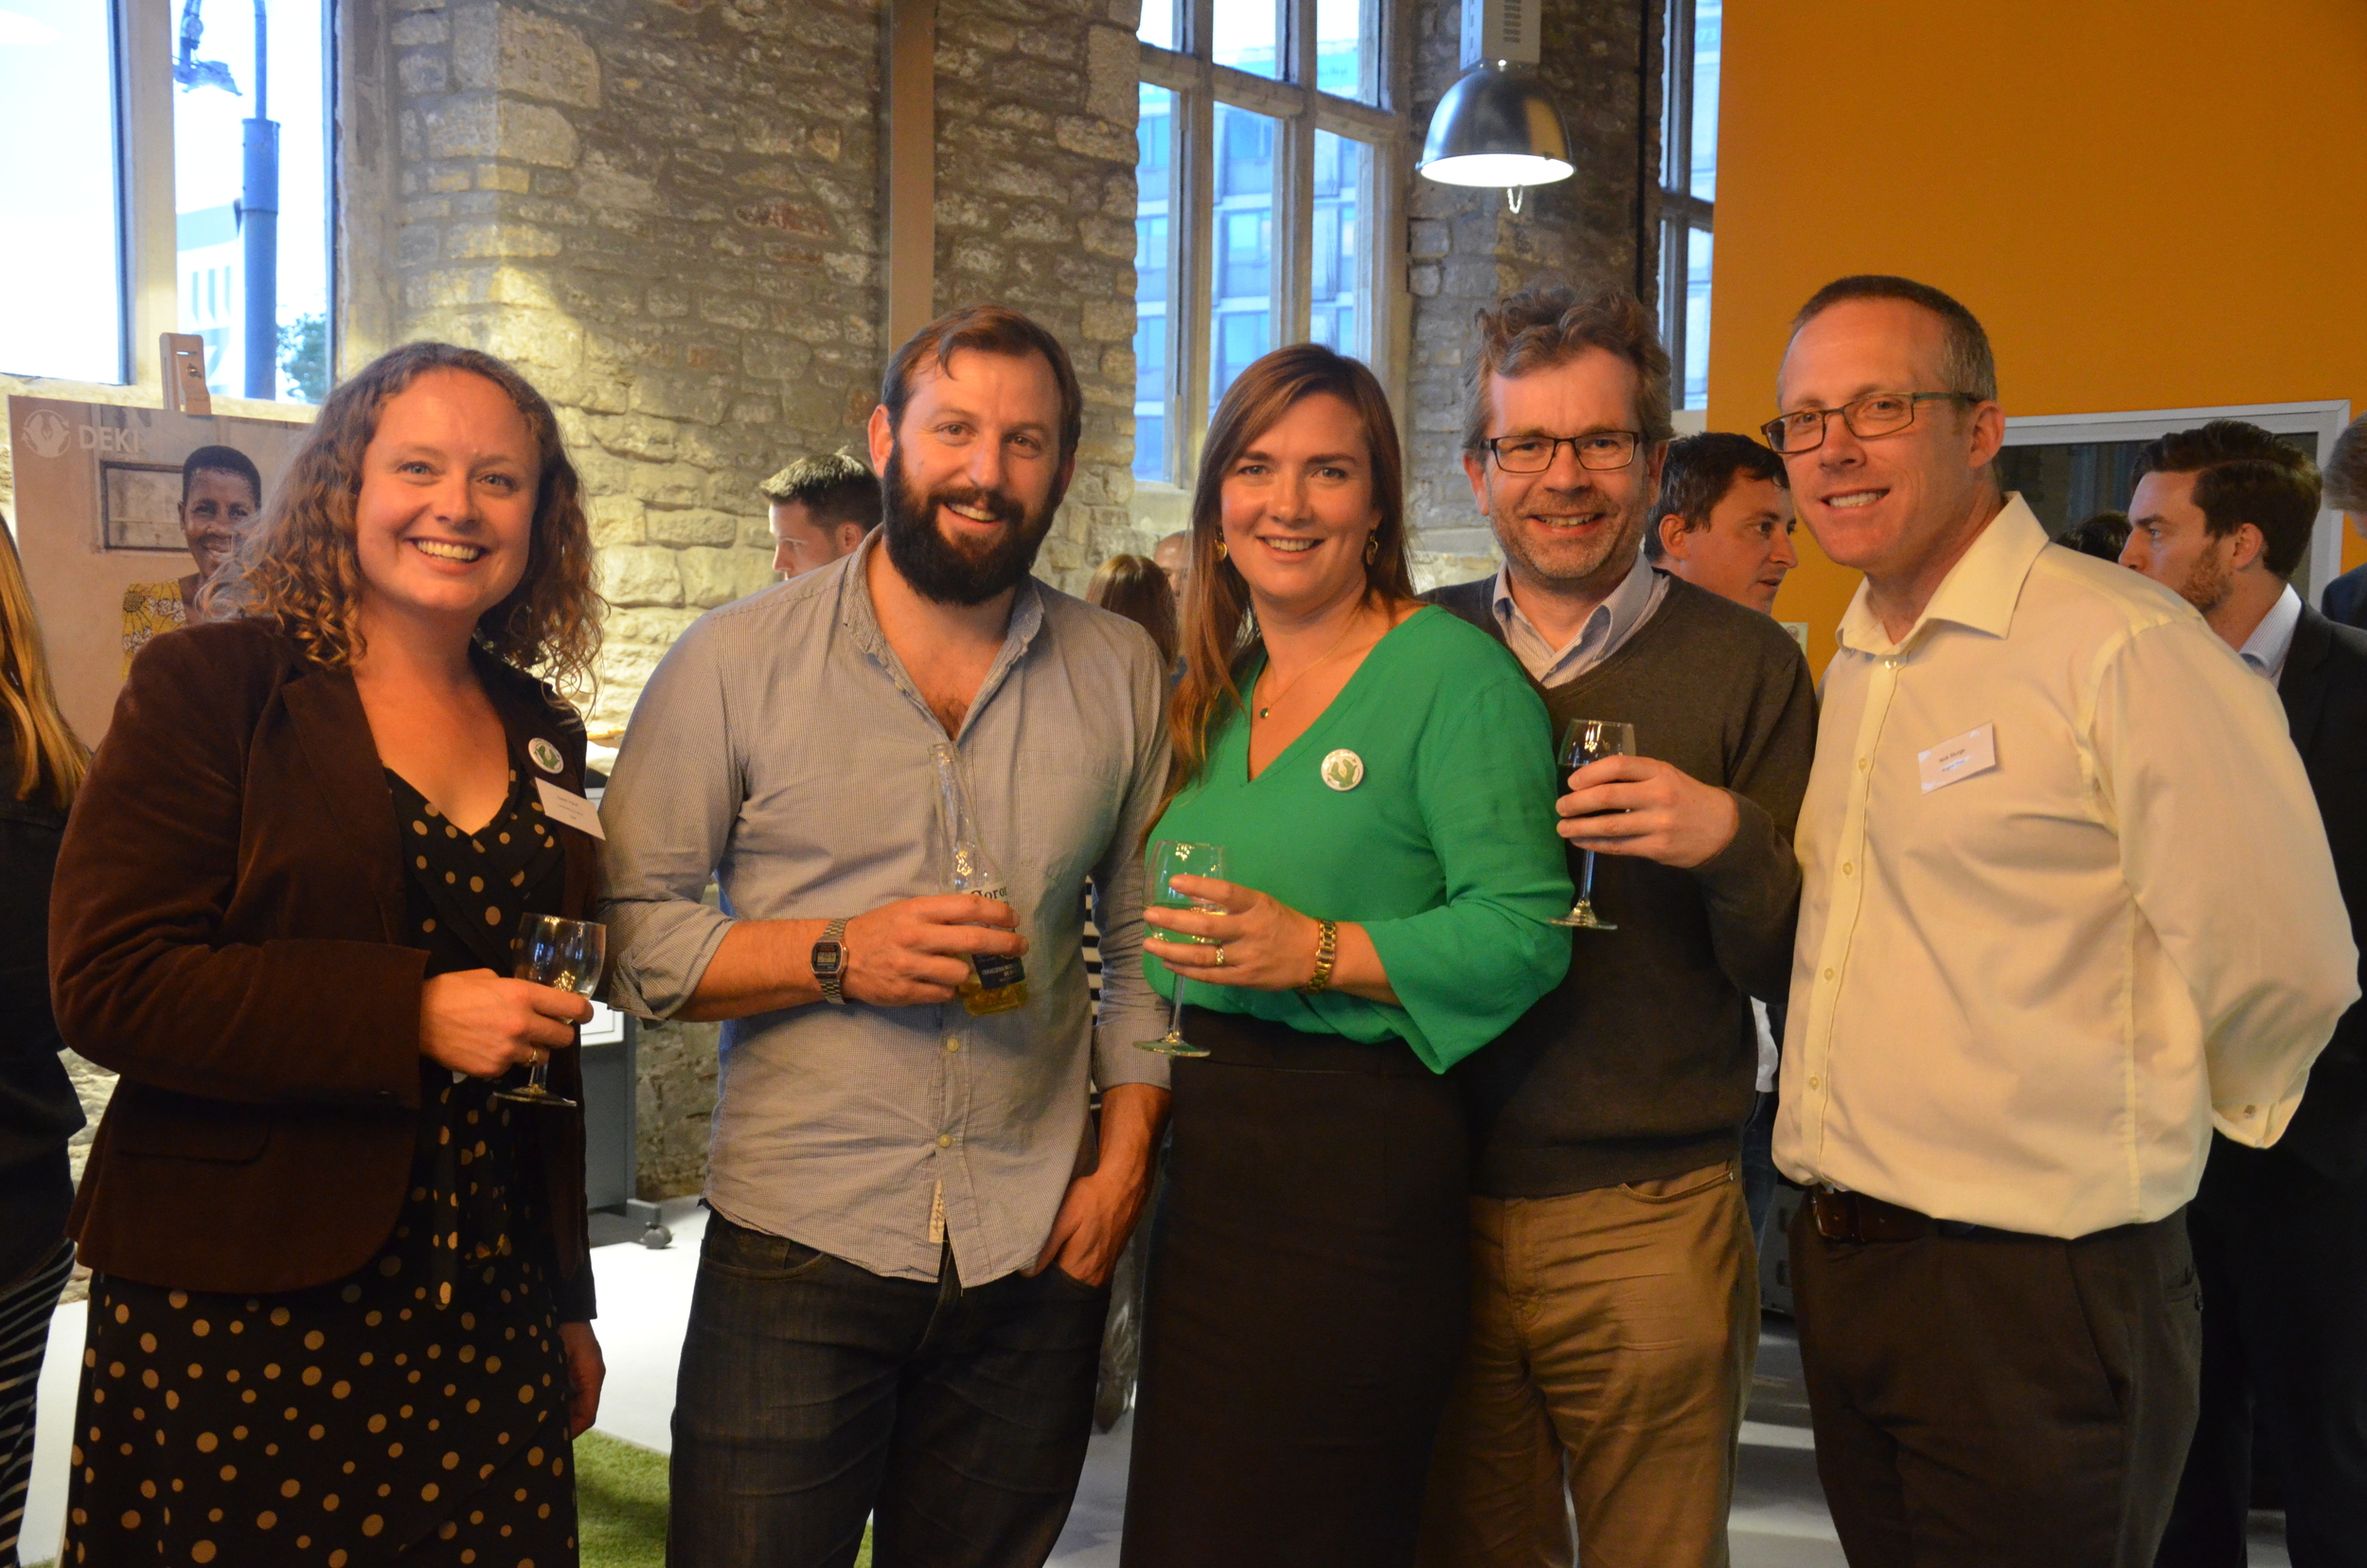 Dawn Heuff (Deki Fundraising Director), Tristan Hogg (Co-Founder Pieminister), Vasthti Seth (Deki Founder), Simon Face (Director, Institute of Directors), Nick Sturge (Director, Engine Shed) X 2.jpg